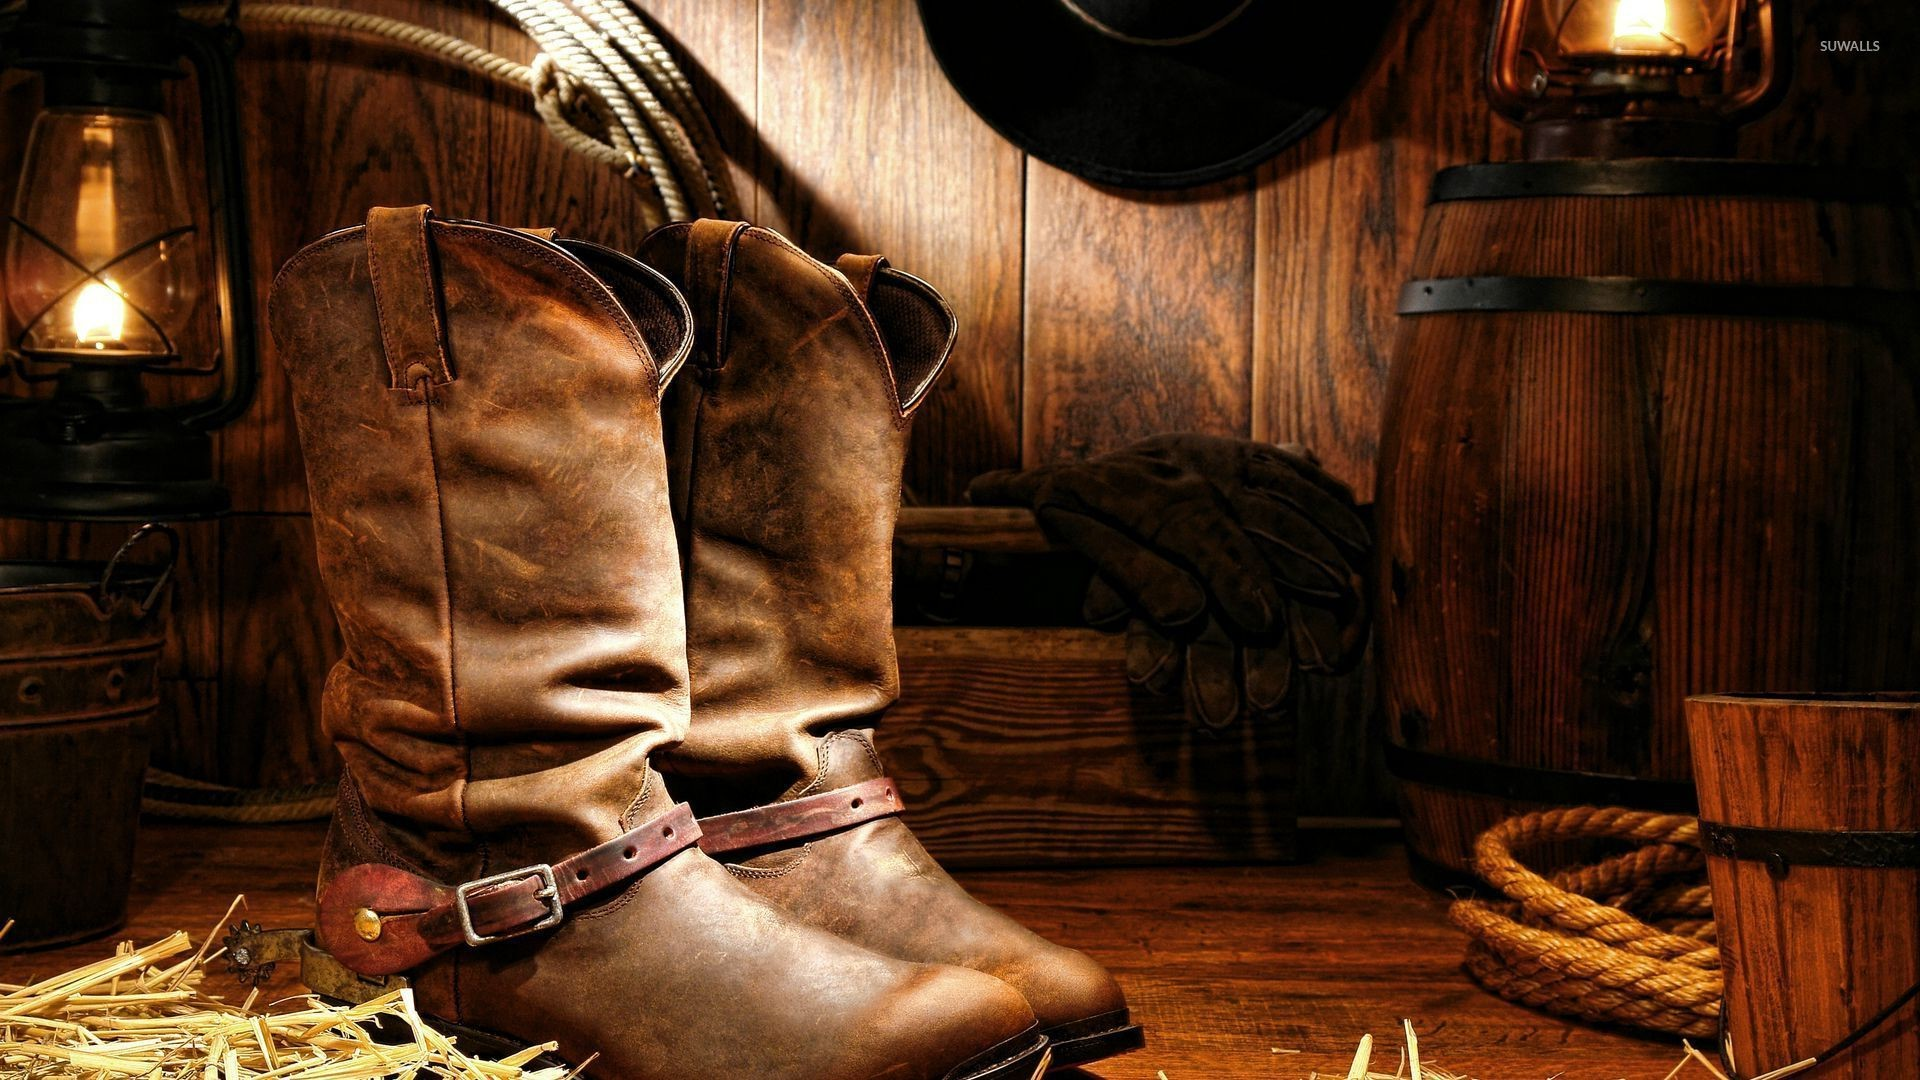 Res: 1920x1080, Cowboy boots wallpaper